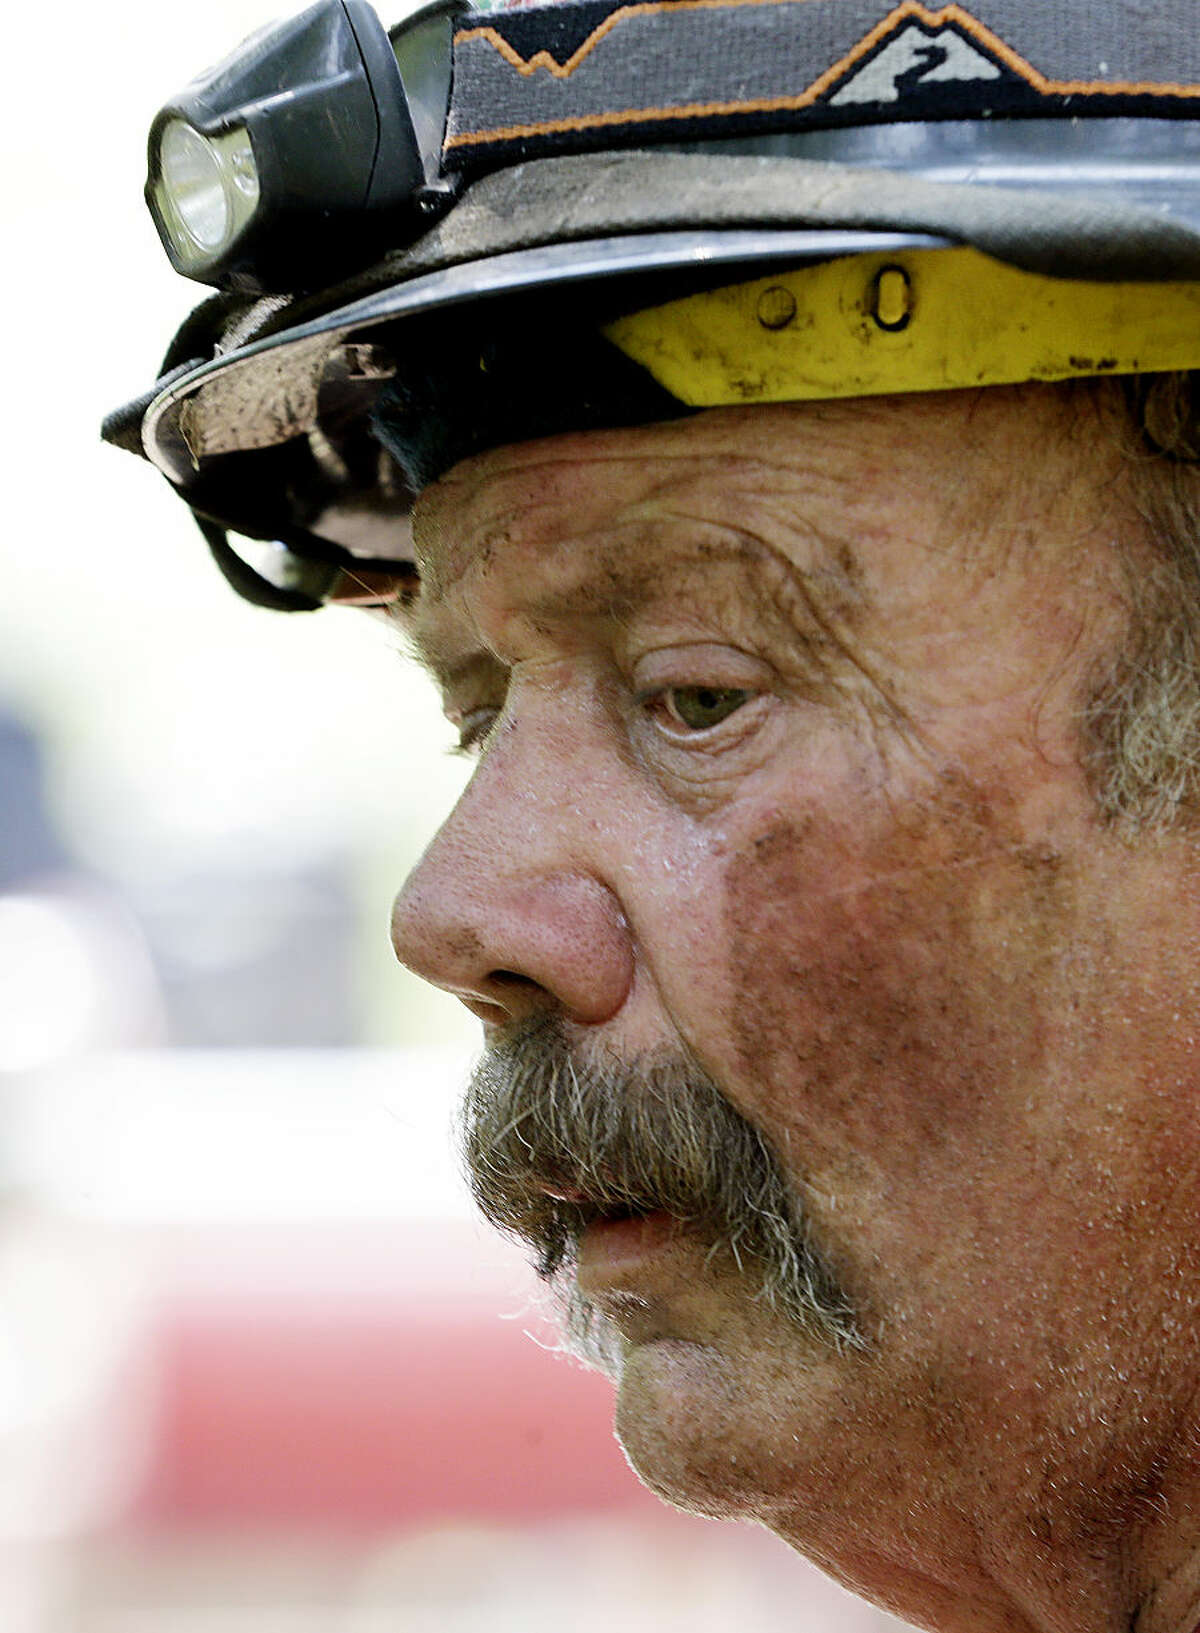 Firefighter Mark Groves, who said he was 32 hours into fighting fire, takes a breather Thursday, Aug. 20, 2015, in Twisp, Wash., a day after three firefighters were killed fighting a wildfire near the town. Authorities say three firefighters died after their vehicle crashed and was apparently caught by a